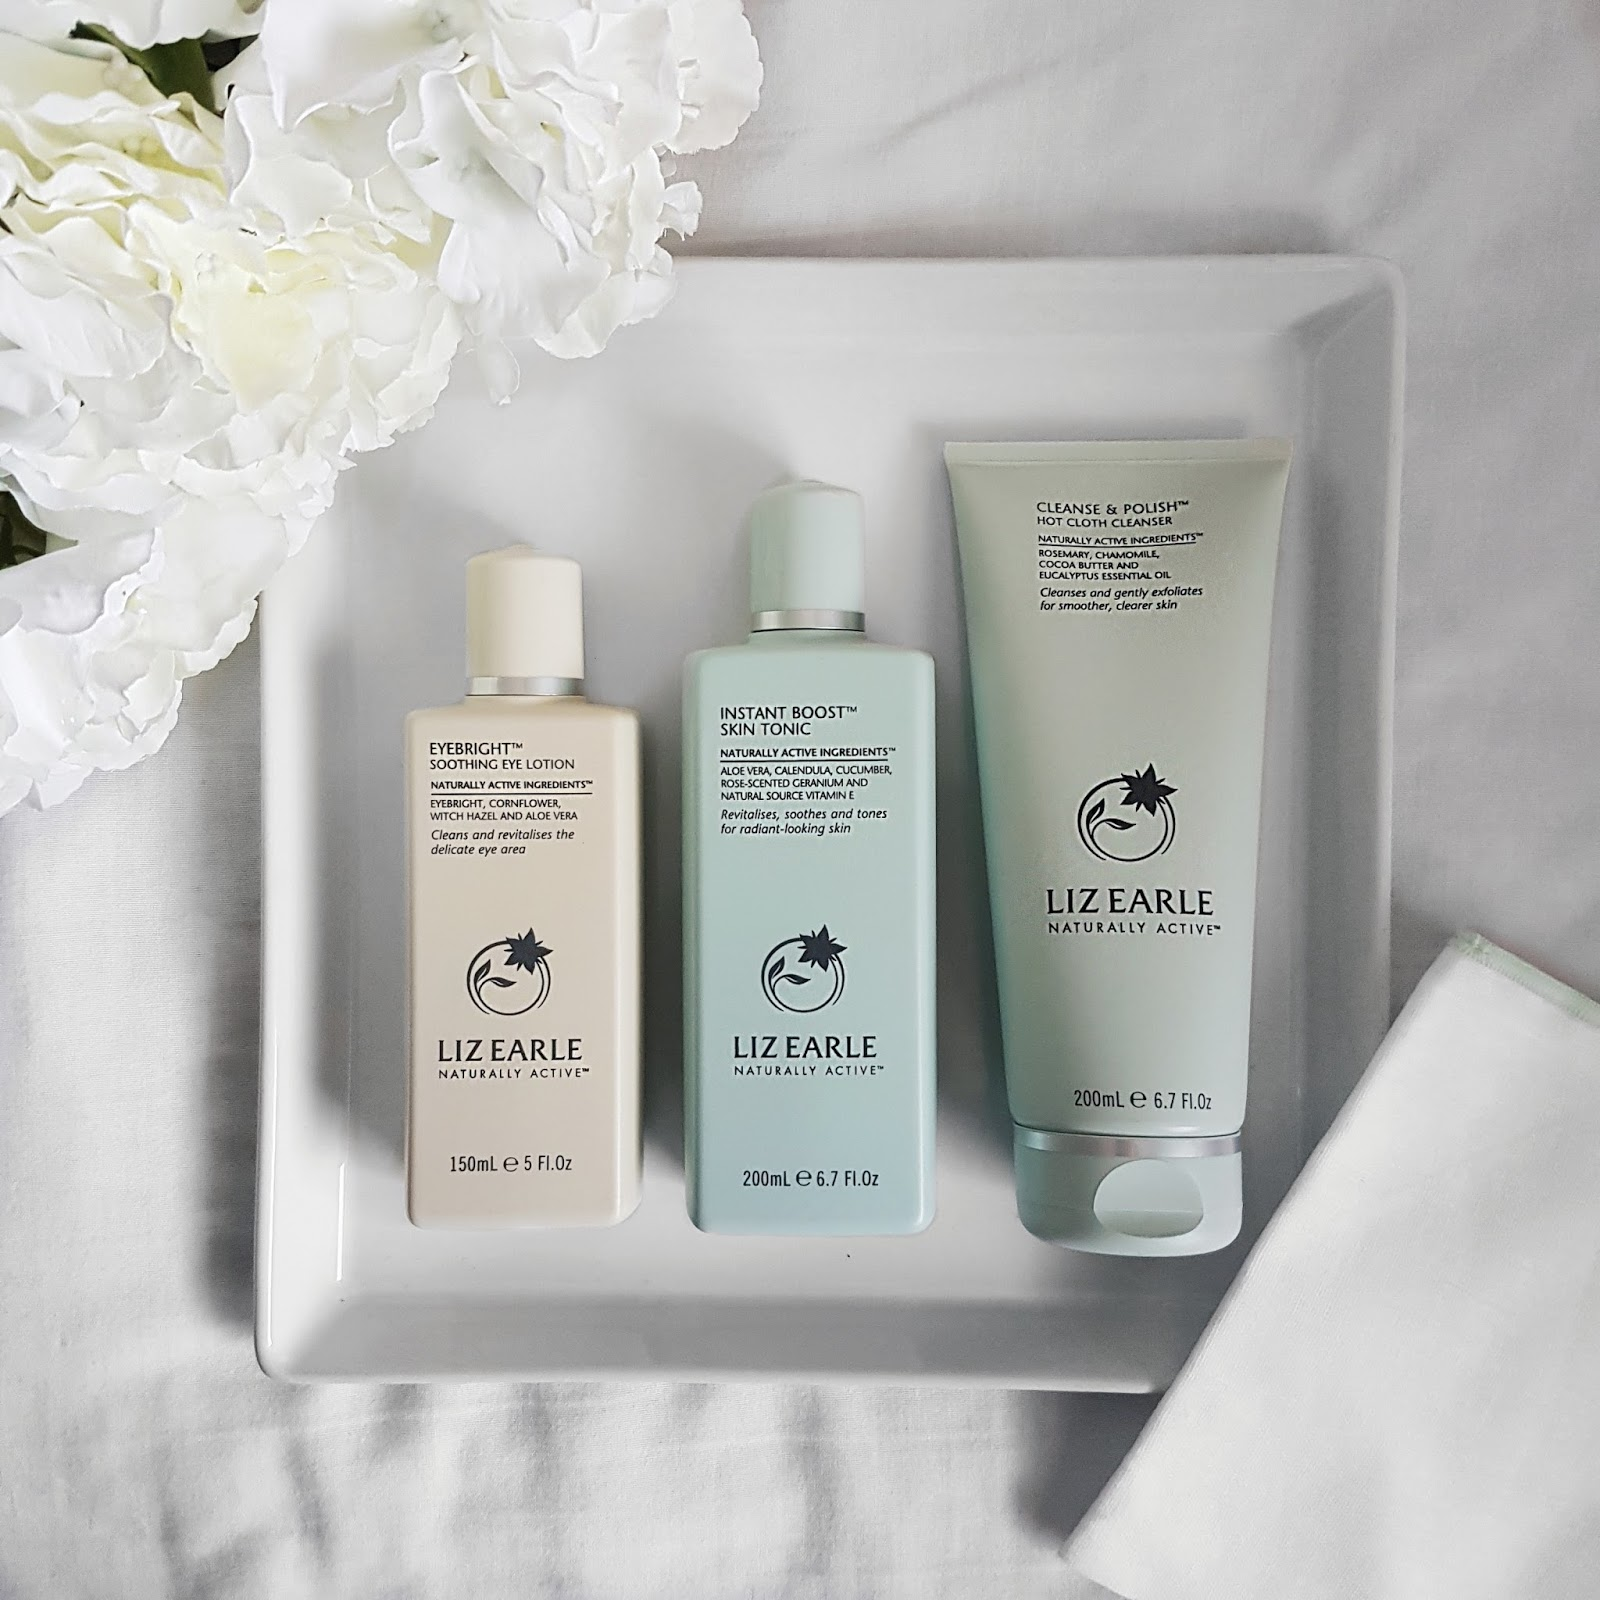 Liz Earle Products